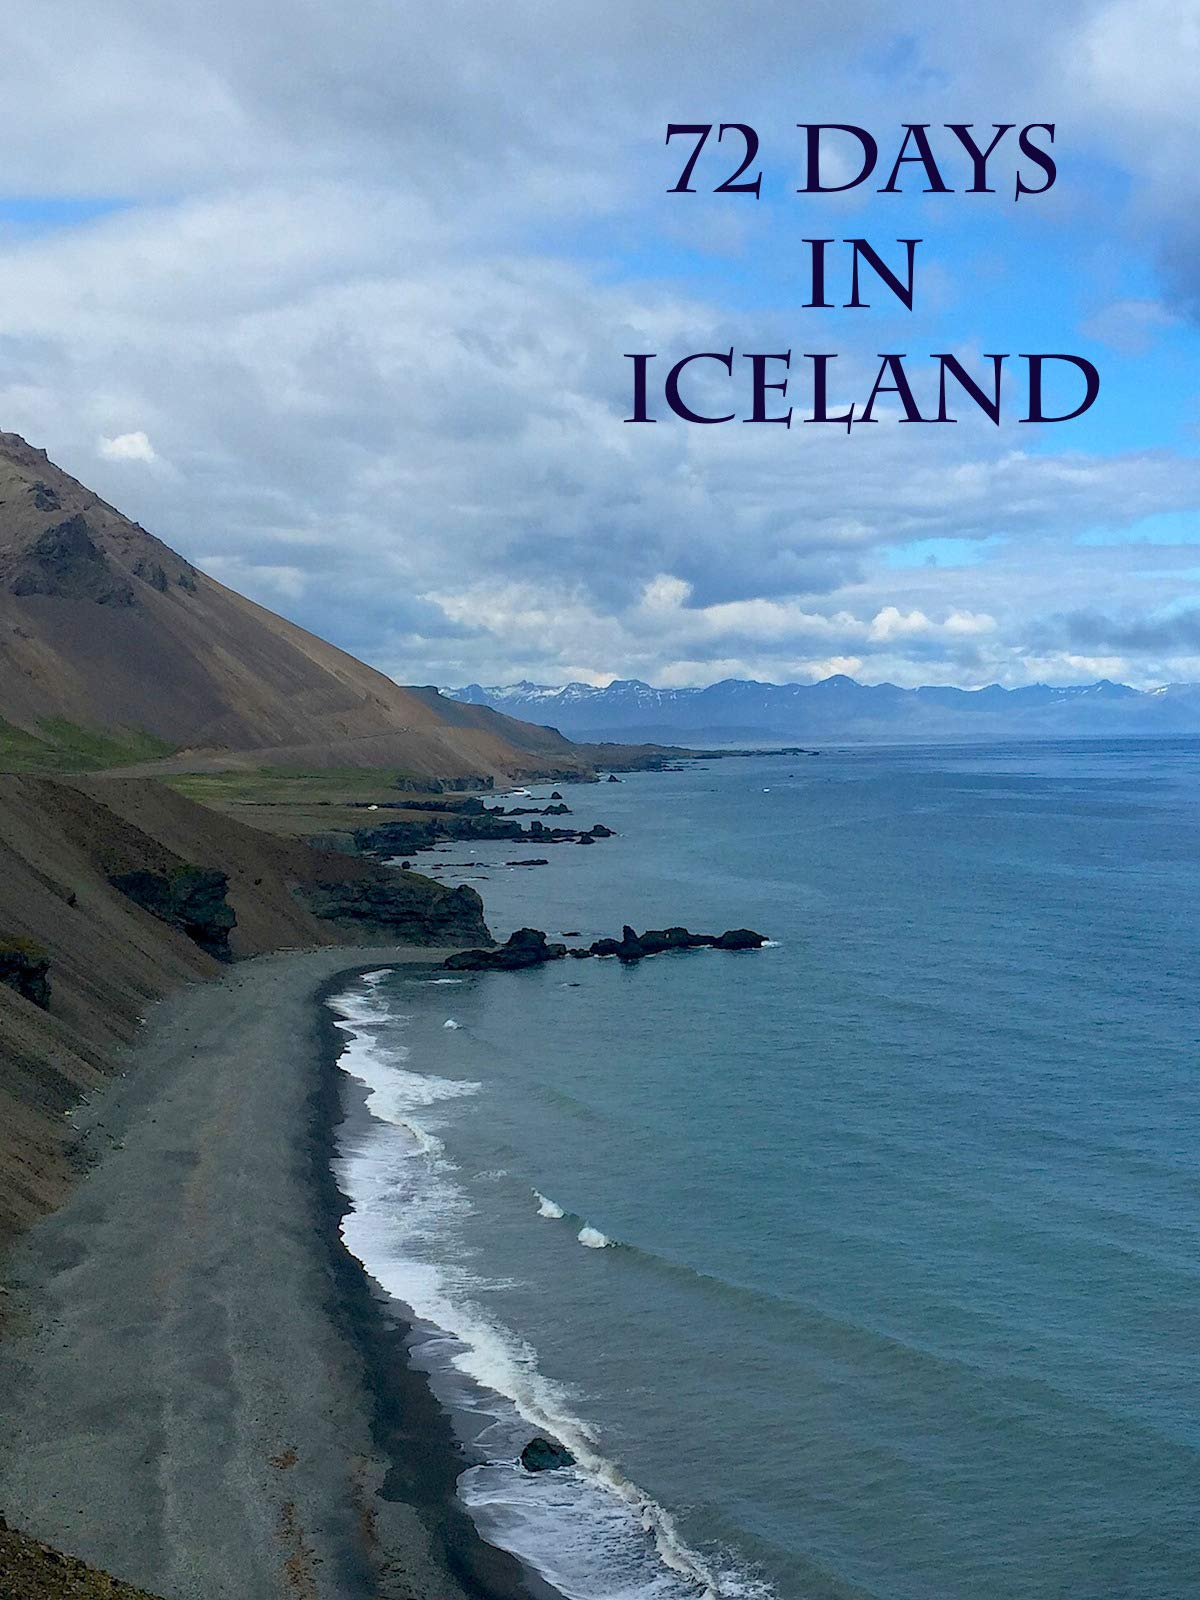 72 days in Iceland